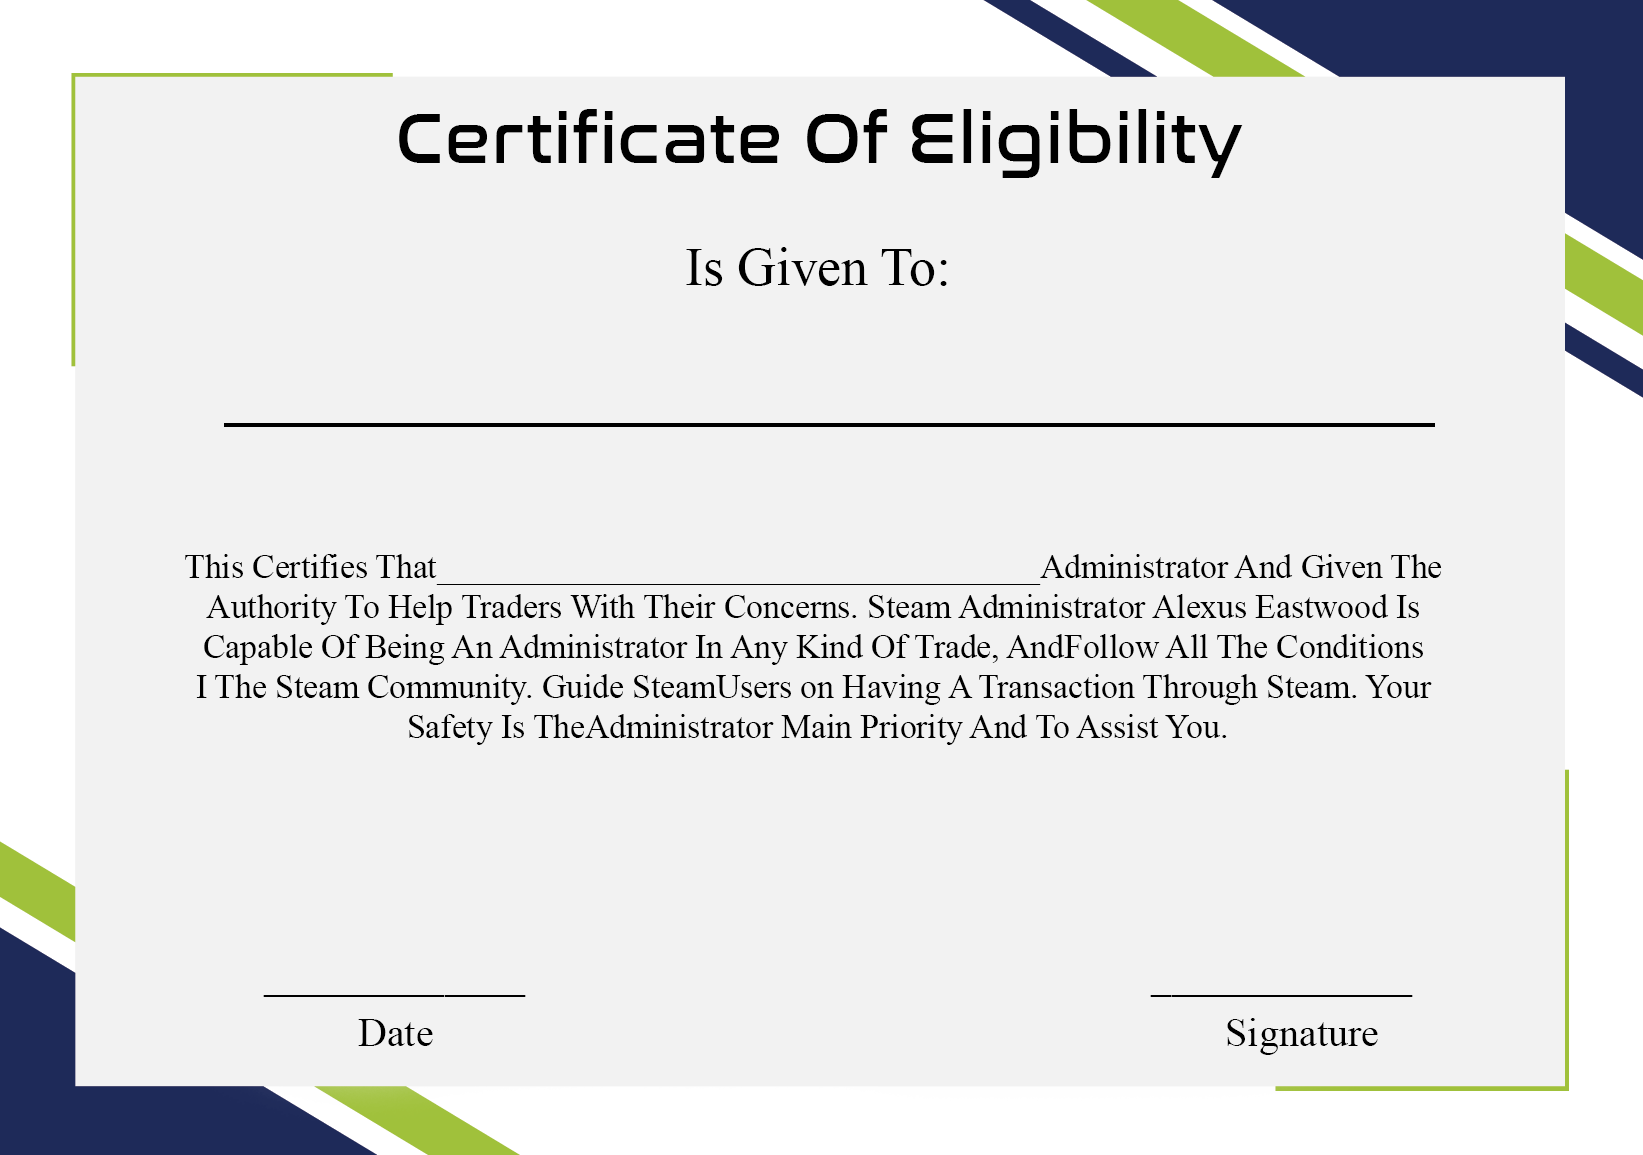 Certificate of Eligibility Meaning